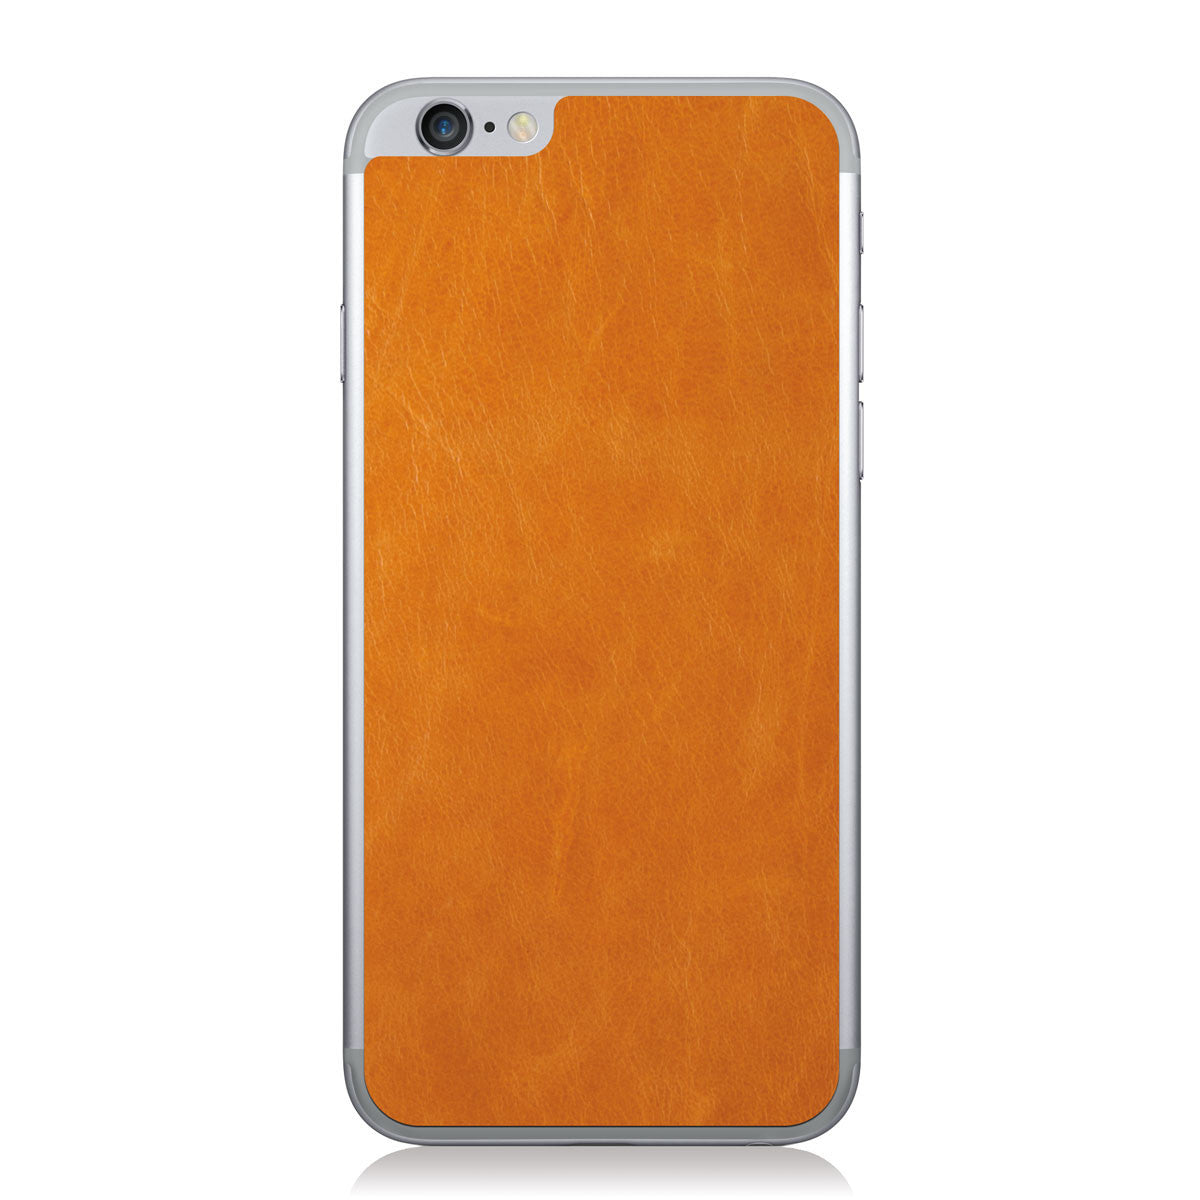 Tan iPhone 6/6s Leather Skin